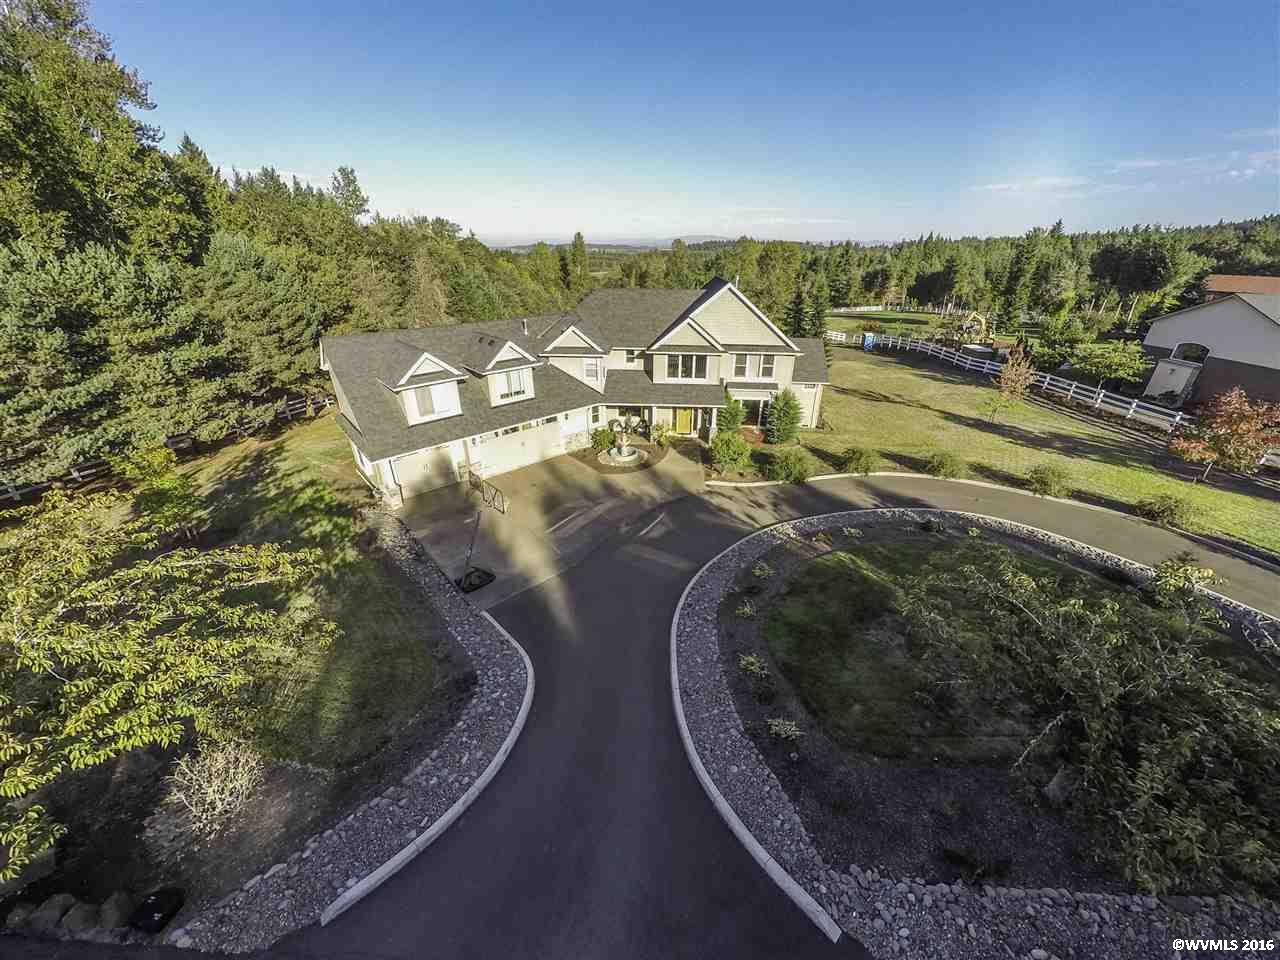 Image of Residential for Sale near Albany, Oregon, in Benton county: 2.00 acres